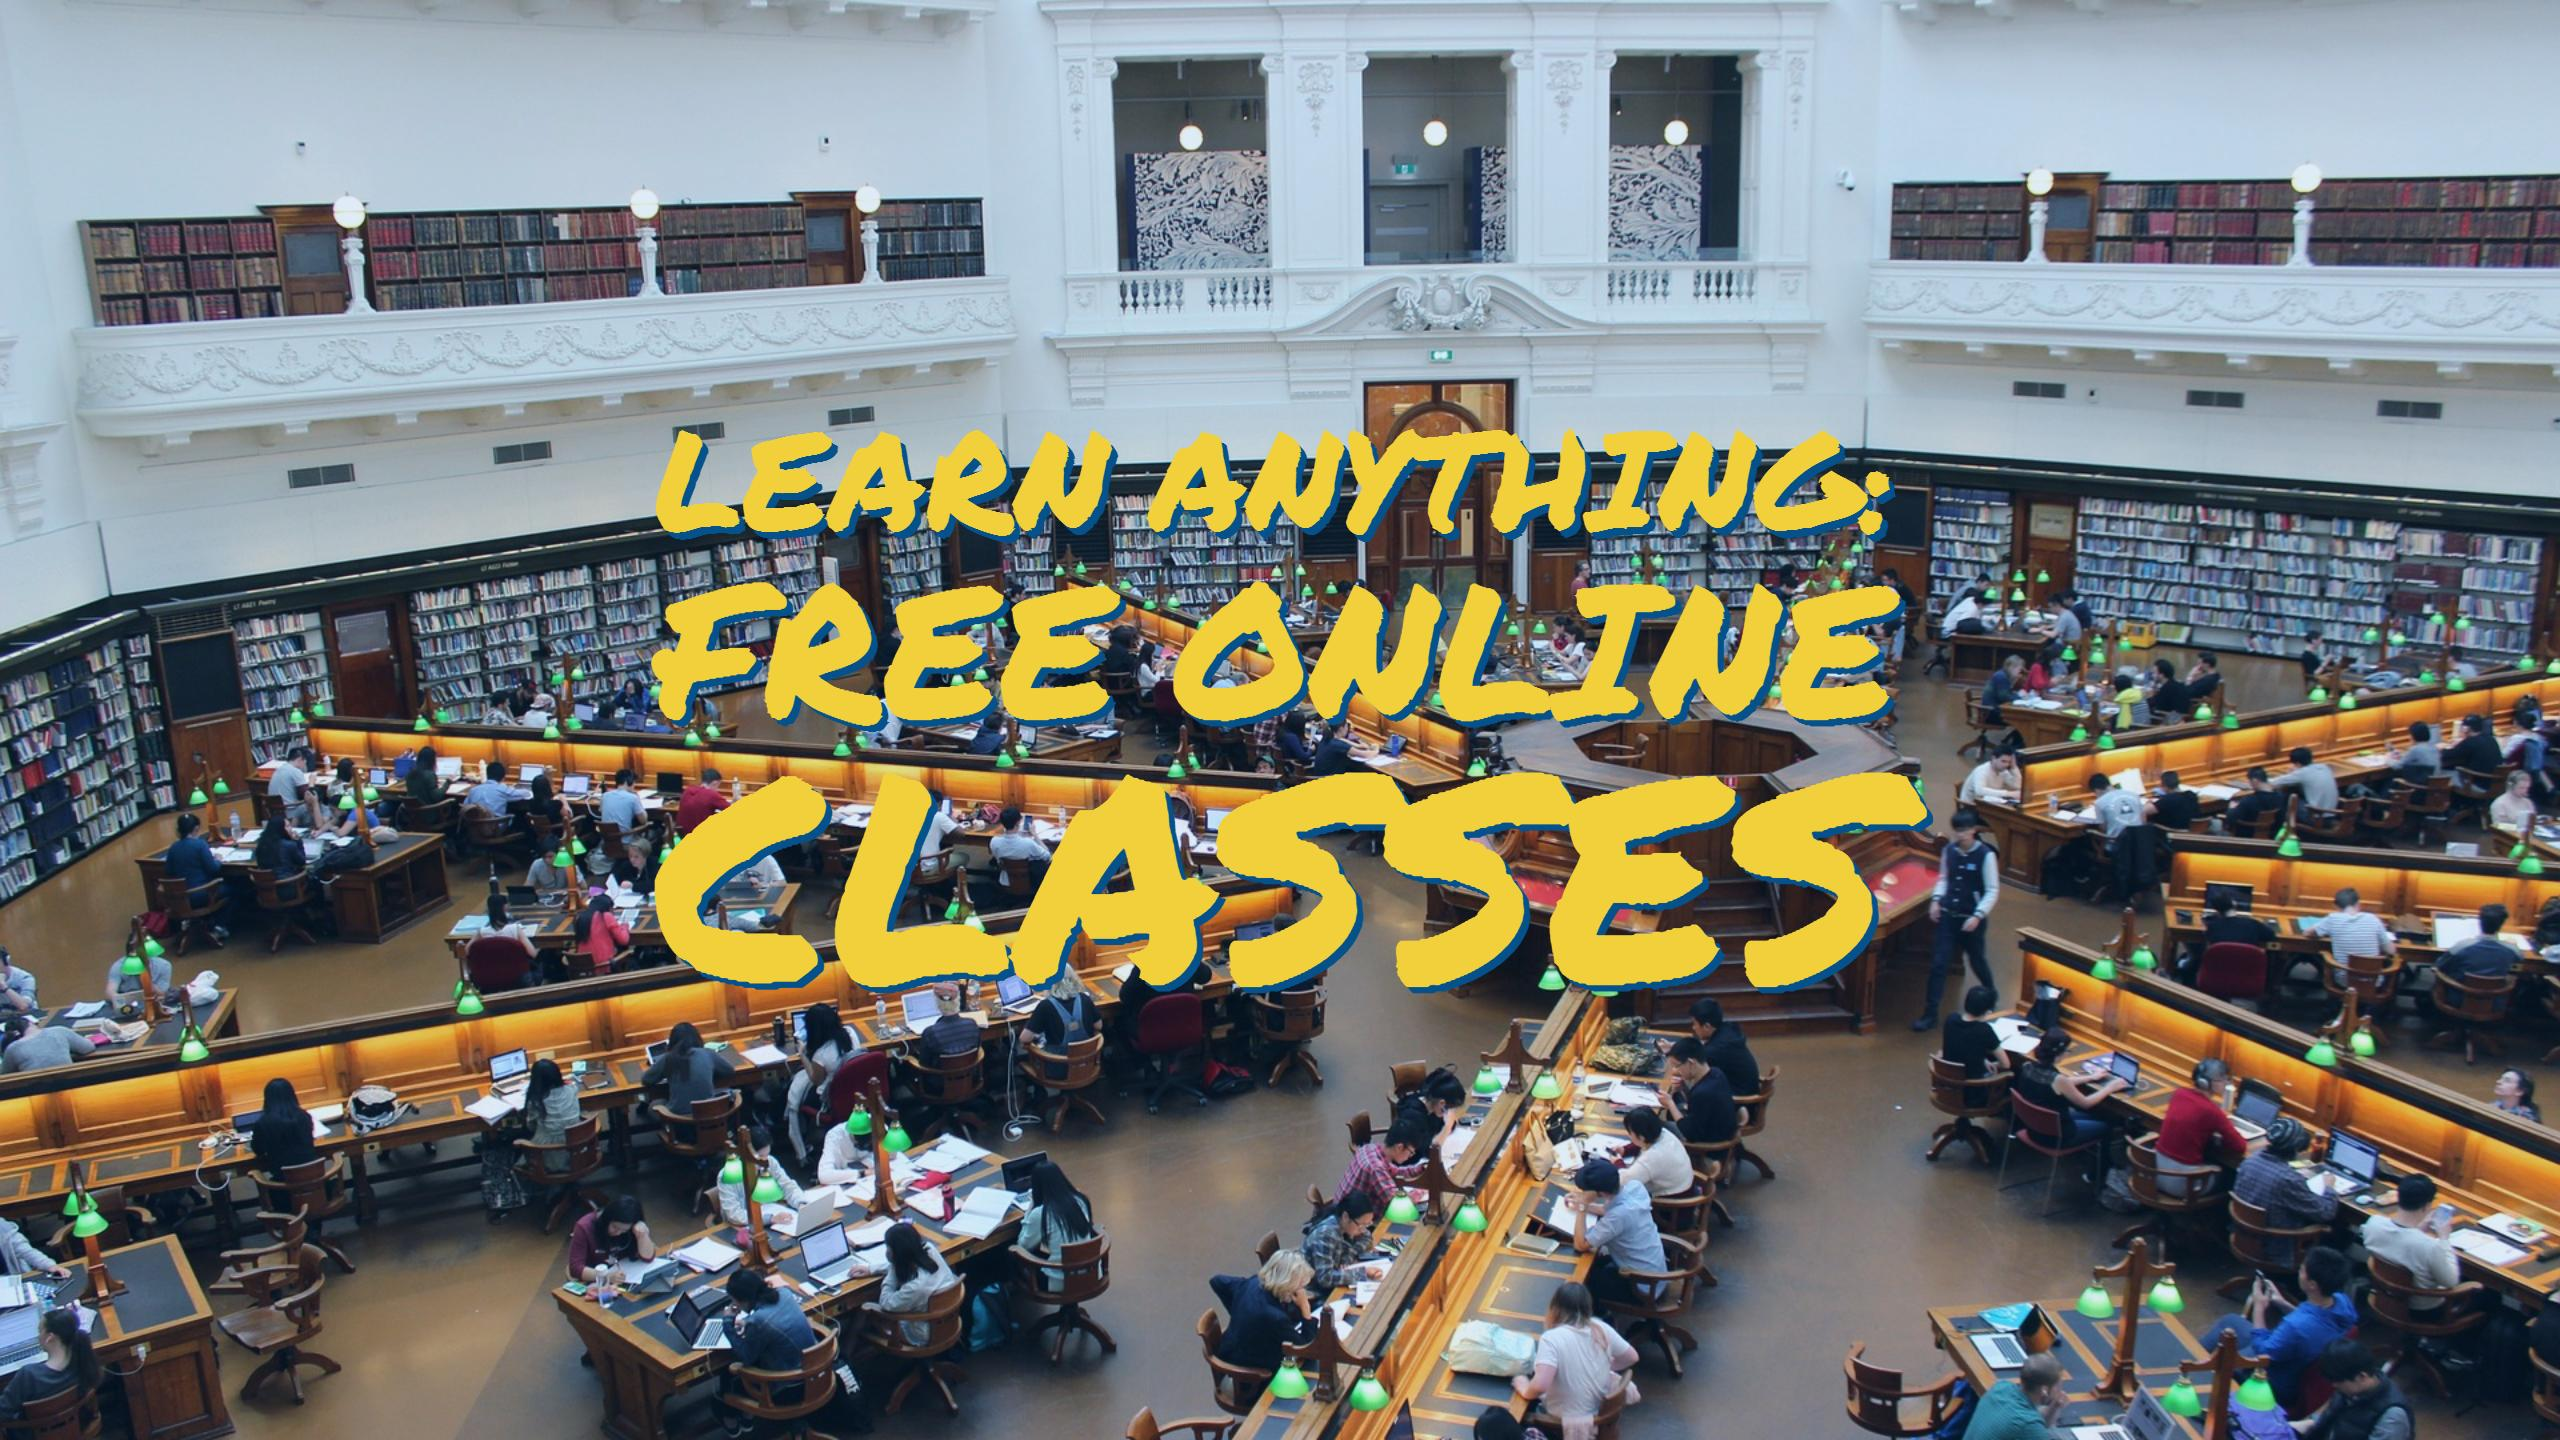 Learn anything online with these free resources for online classes from free stuff friday and fiscal fitness phoenix